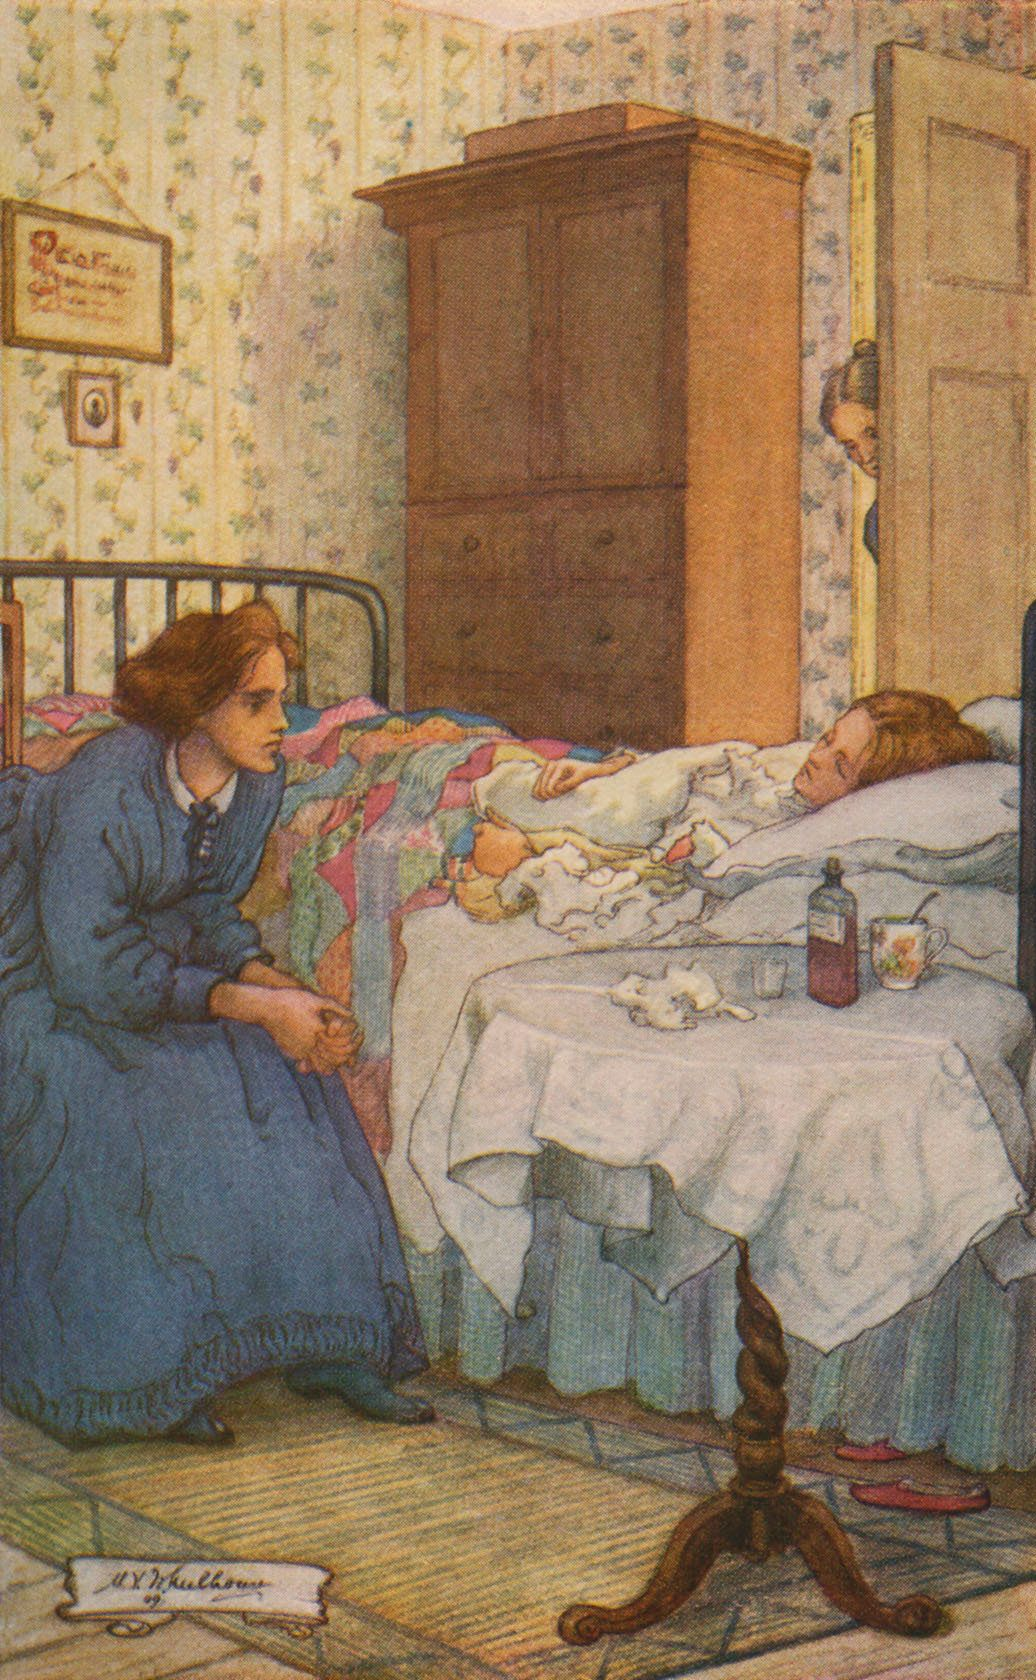 Jo at Beth's sickbed, in a <i>Little Women</i> illustration by M.V. Wheelhouse.